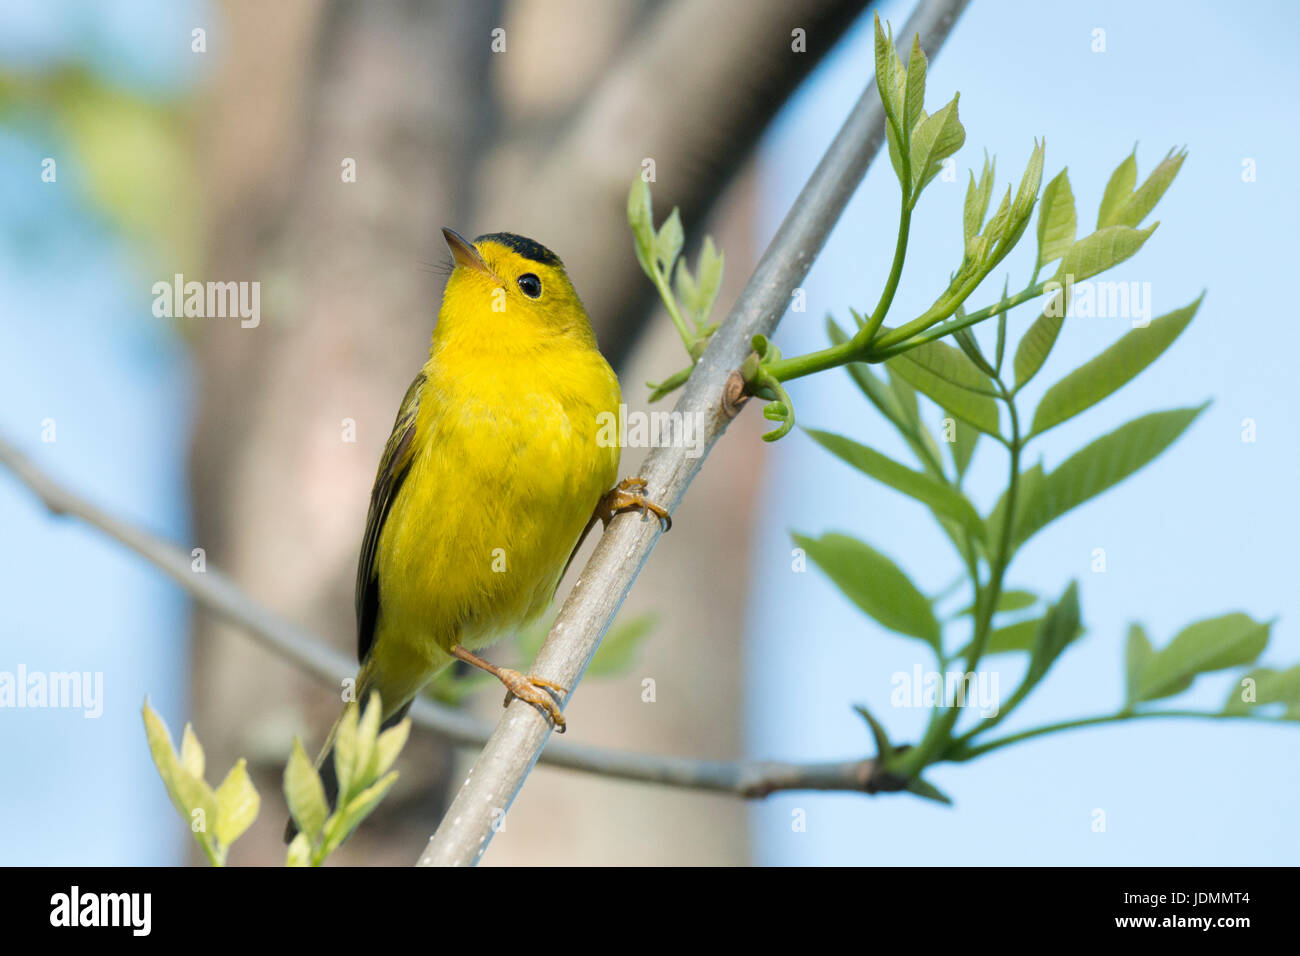 Wilson's Warbler male looks up from perch on budding plant at Magee Marsh - Stock Image